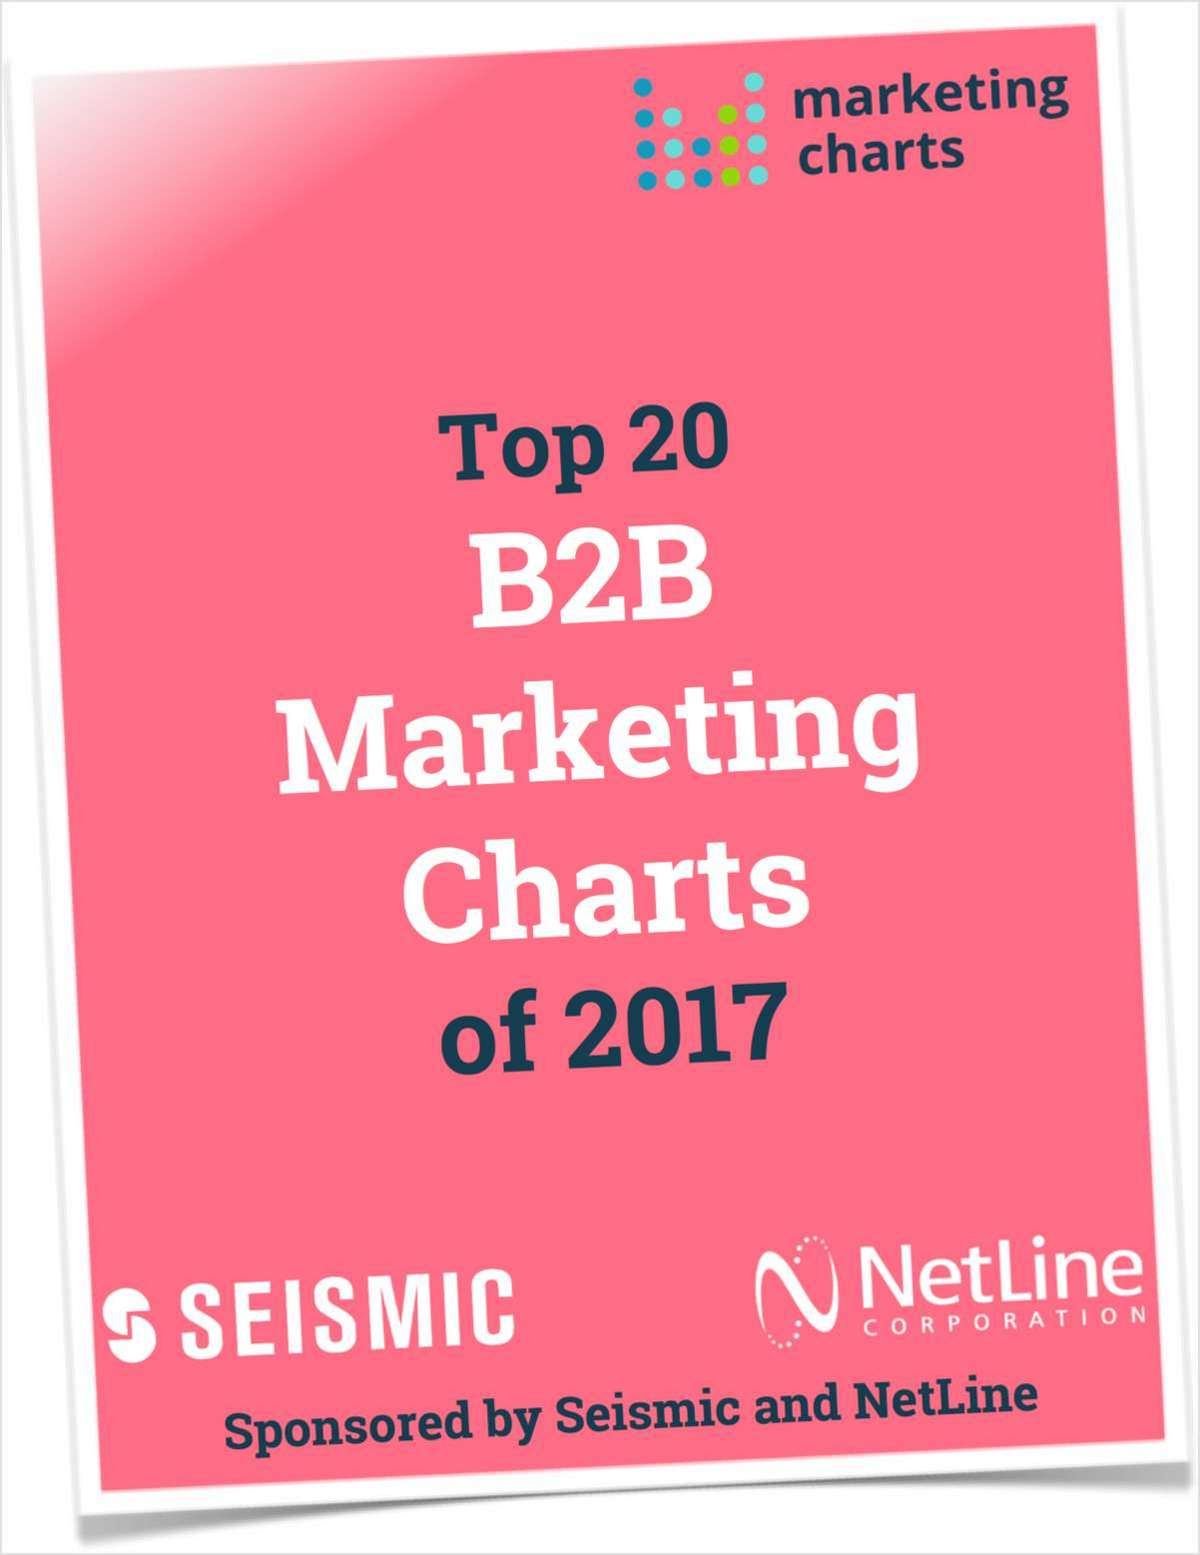 Top 20 B2B Marketing Charts of 2017